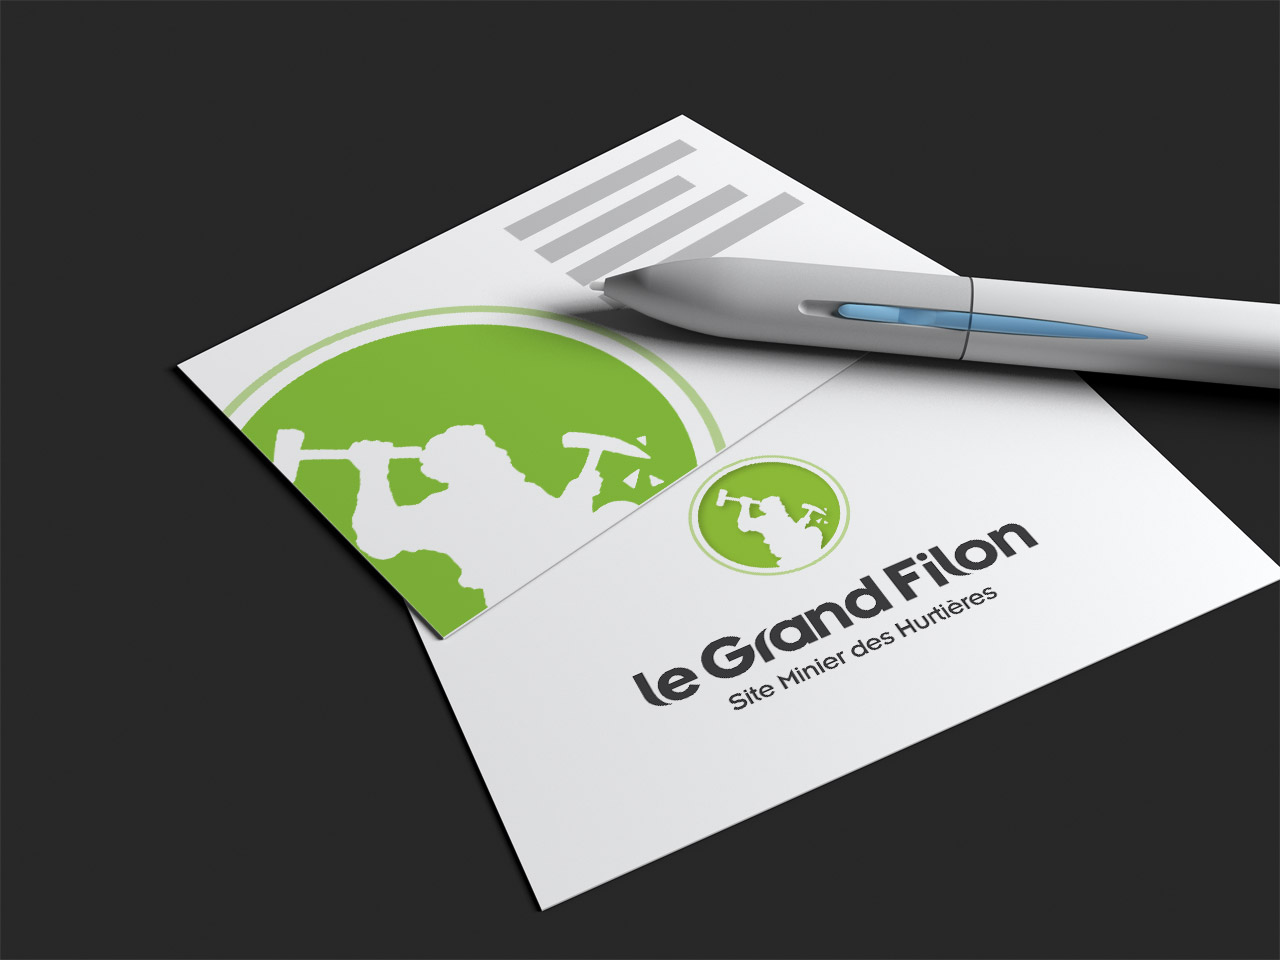 le-grand-filon-logo-identite-visuelle-creation-communication-caconcept-alexis-cretin-graphiste